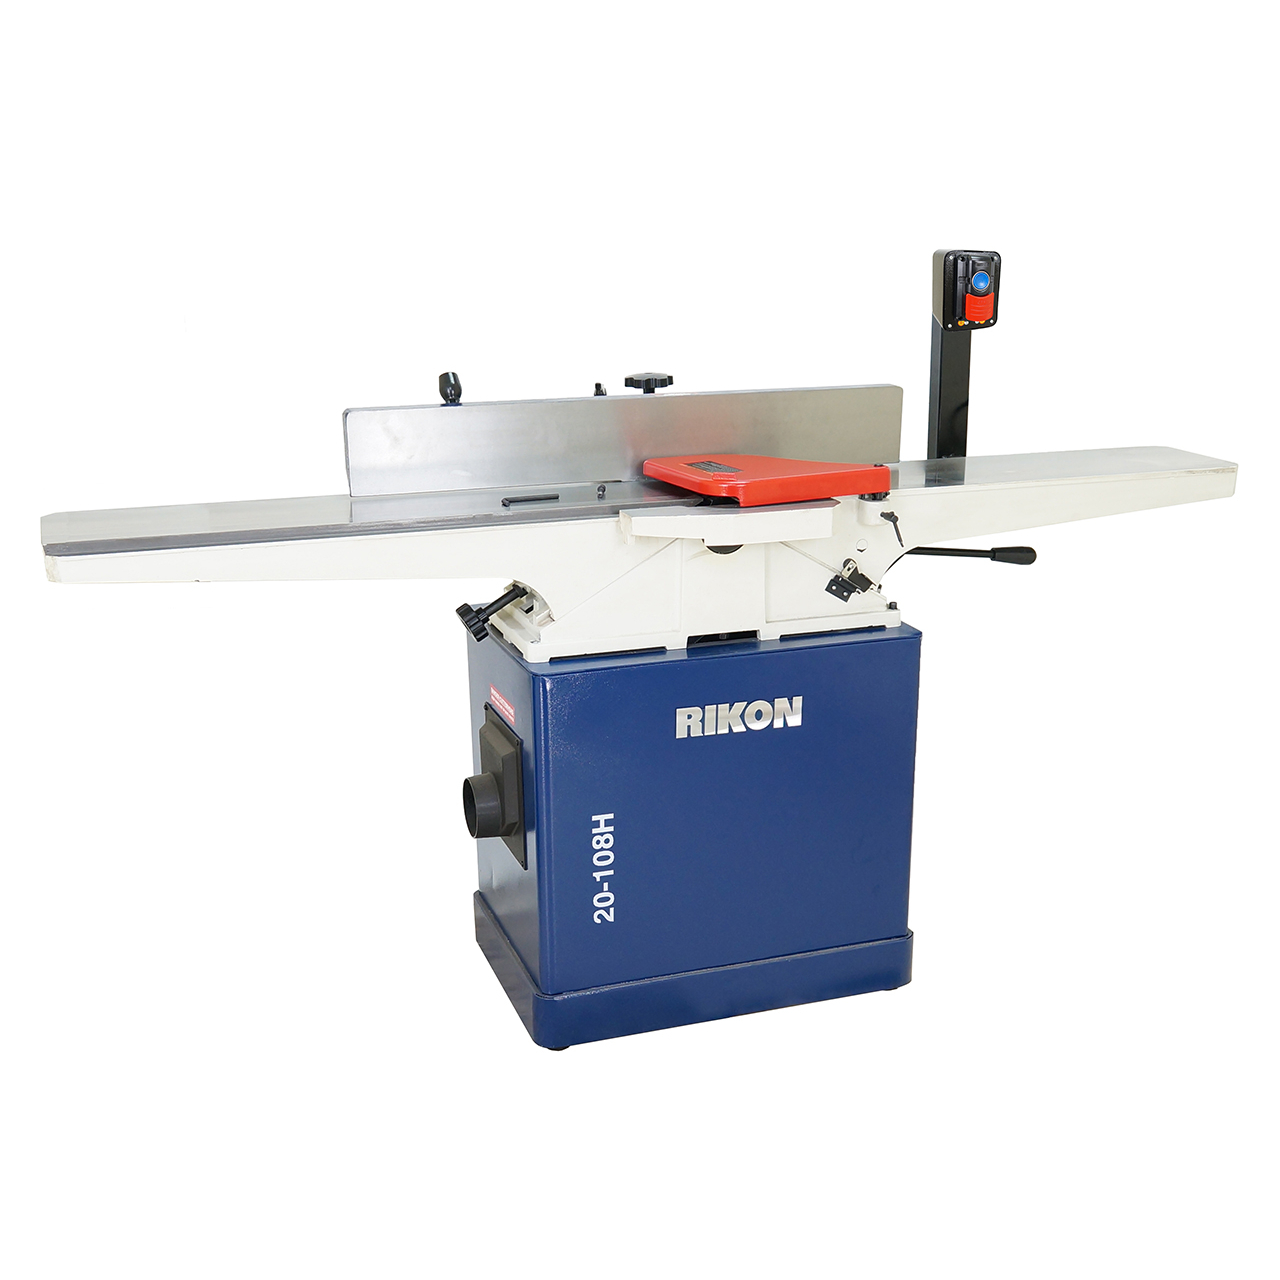 Model  E2 80 B3 Helical Jointer